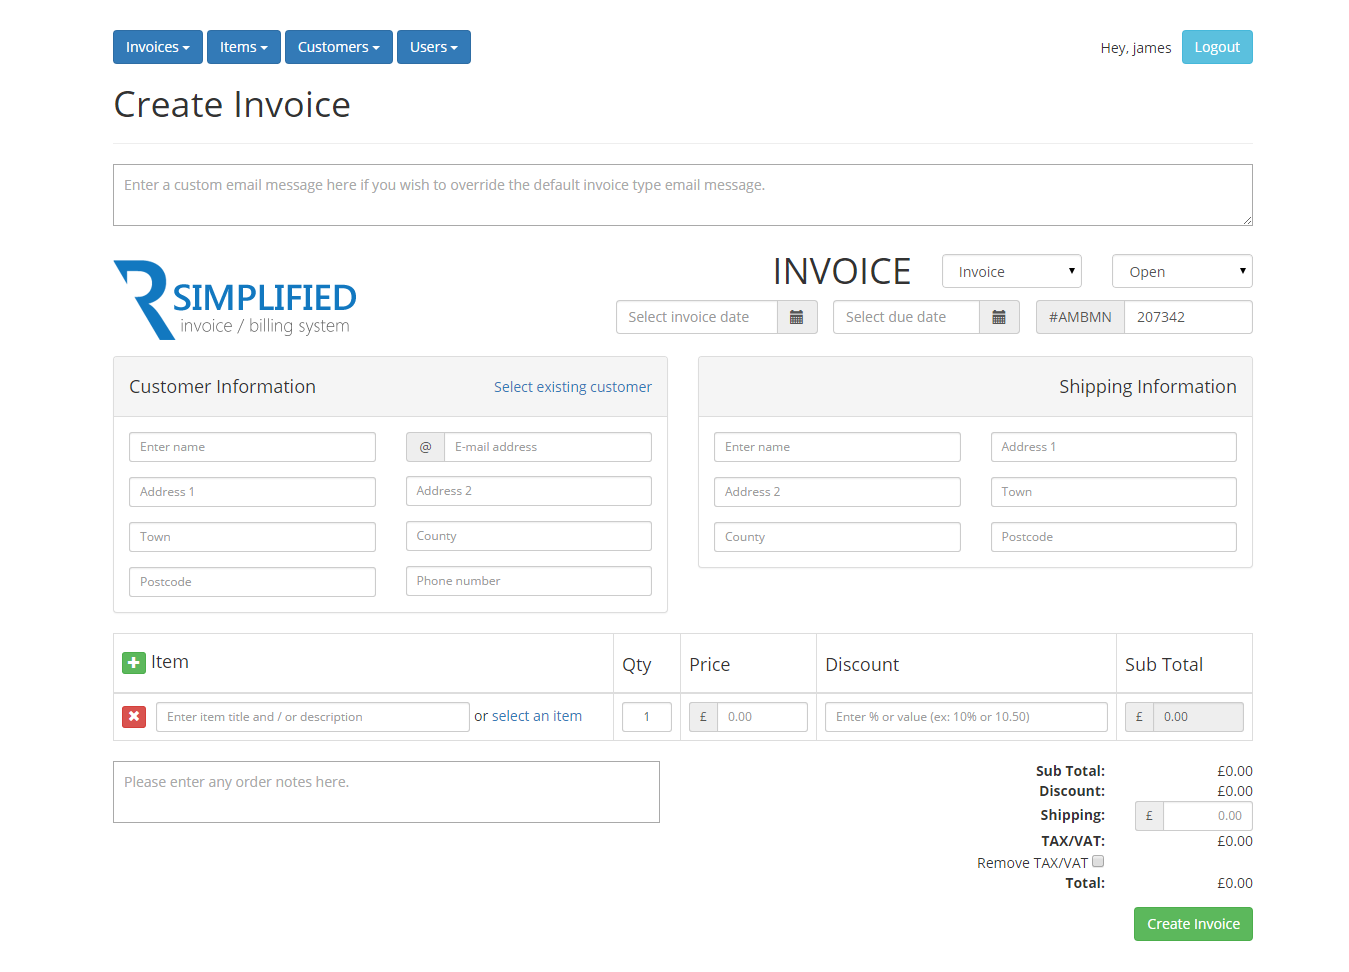 Breakupus  Unusual Simplified Php Invoice  Billing System By Rebootdigitaluk  With Goodlooking  Createinvoicepng  With Delightful Invoice Software Review Also Invoice Html Template In Addition Free Download Invoice And Microsoft Invoicing As Well As Ford F Invoice Additionally Jeep Wrangler Unlimited Invoice From Codecanyonnet With Breakupus  Goodlooking Simplified Php Invoice  Billing System By Rebootdigitaluk  With Delightful  Createinvoicepng  And Unusual Invoice Software Review Also Invoice Html Template In Addition Free Download Invoice From Codecanyonnet